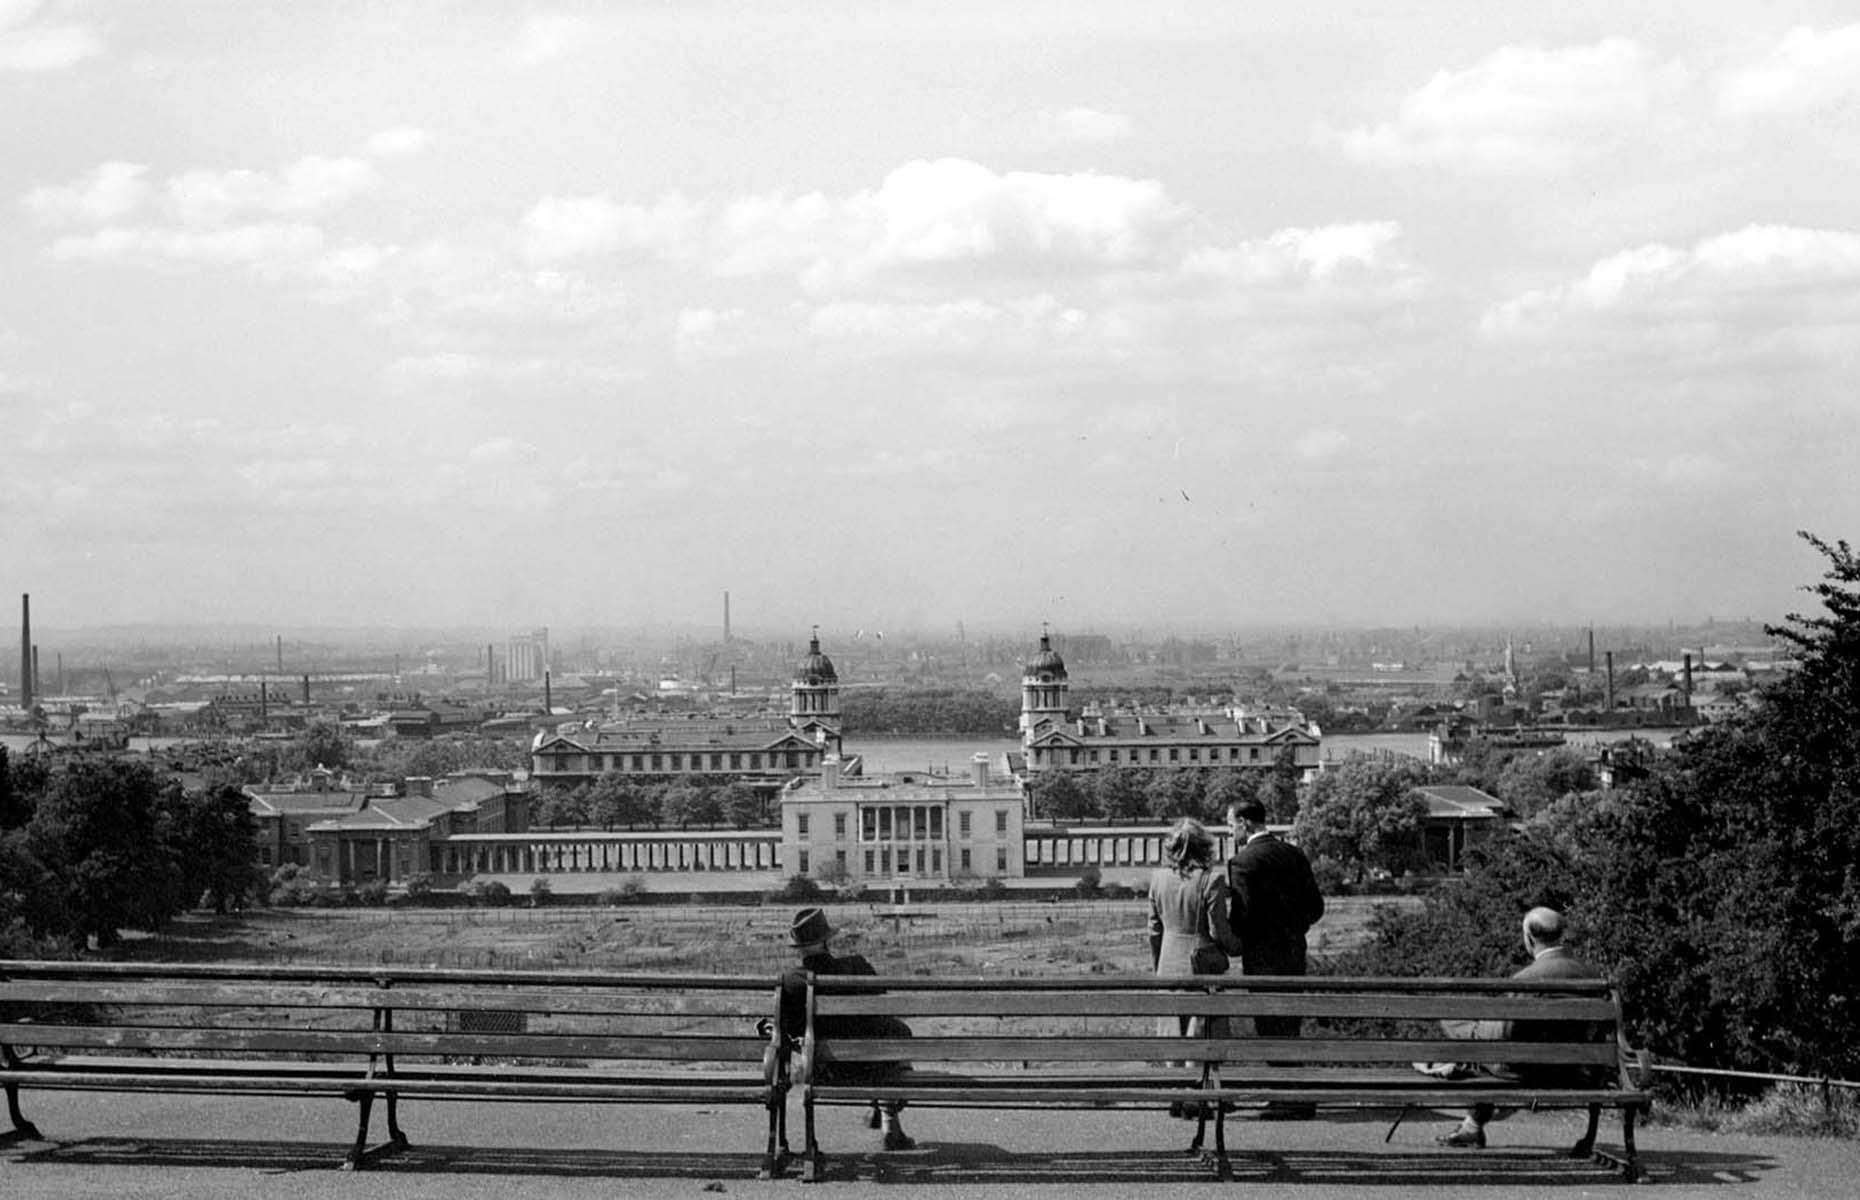 Slide 2 of 27: Captured from Greenwich Park sometime between 1945 and 1965, the Old Royal Naval College and Queen's House dominate the landscape here while, directly opposite, the view of the Thames' north bank is characterized by countless factory chimneys. Canary Wharf, alongside the Isle of Dogs, Limehouse and Poplar, were among the busiest docks in the world. After the 1960s, the port industry here declined and the docks closed completely by 1980.